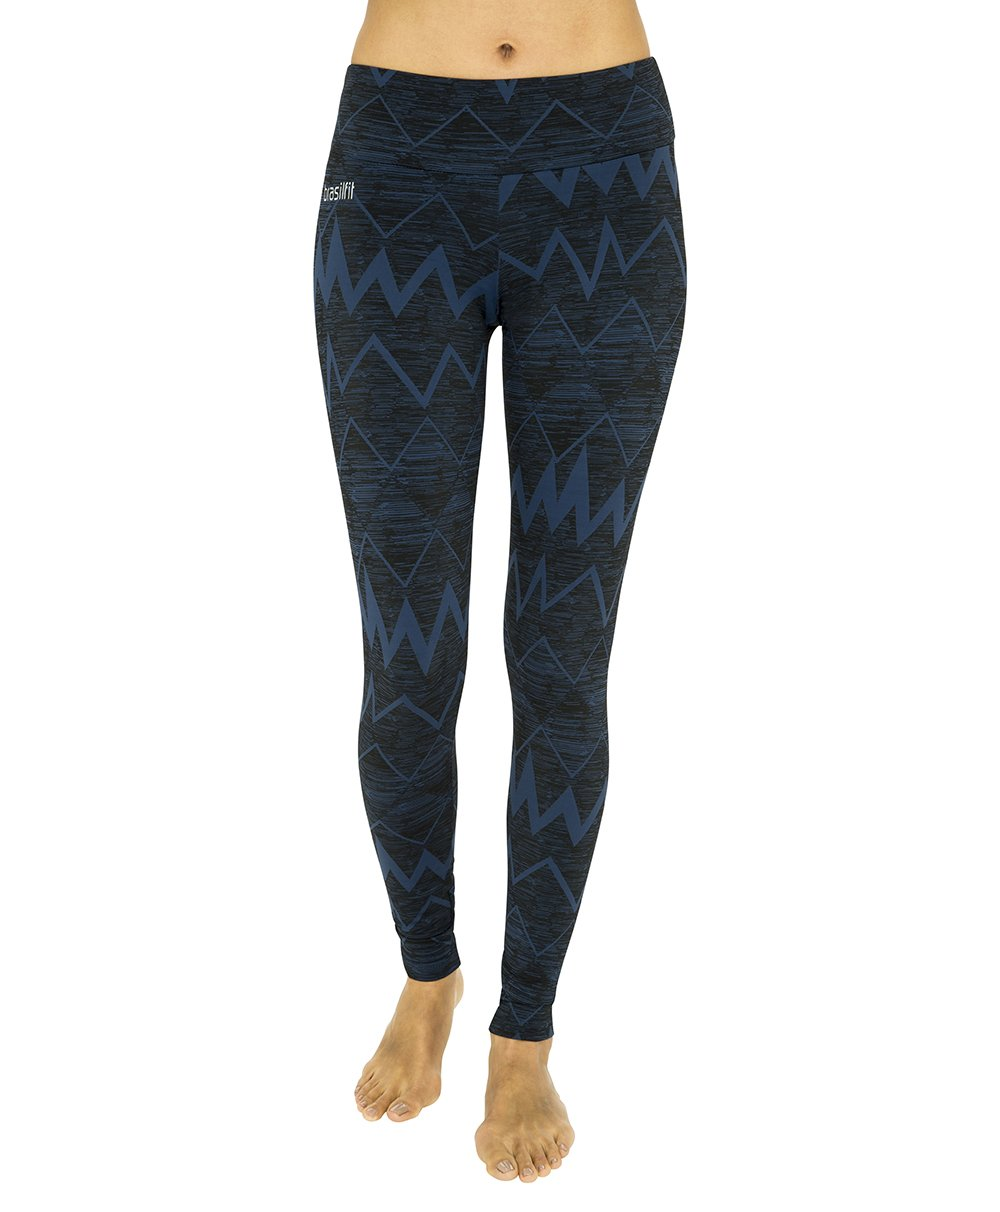 Side view product image for Brasilfit Jupiter Full Length activewear leggings.  Jupiter leggings are part of our textured activewear legging collection that is focused on performance, high compression activewear.